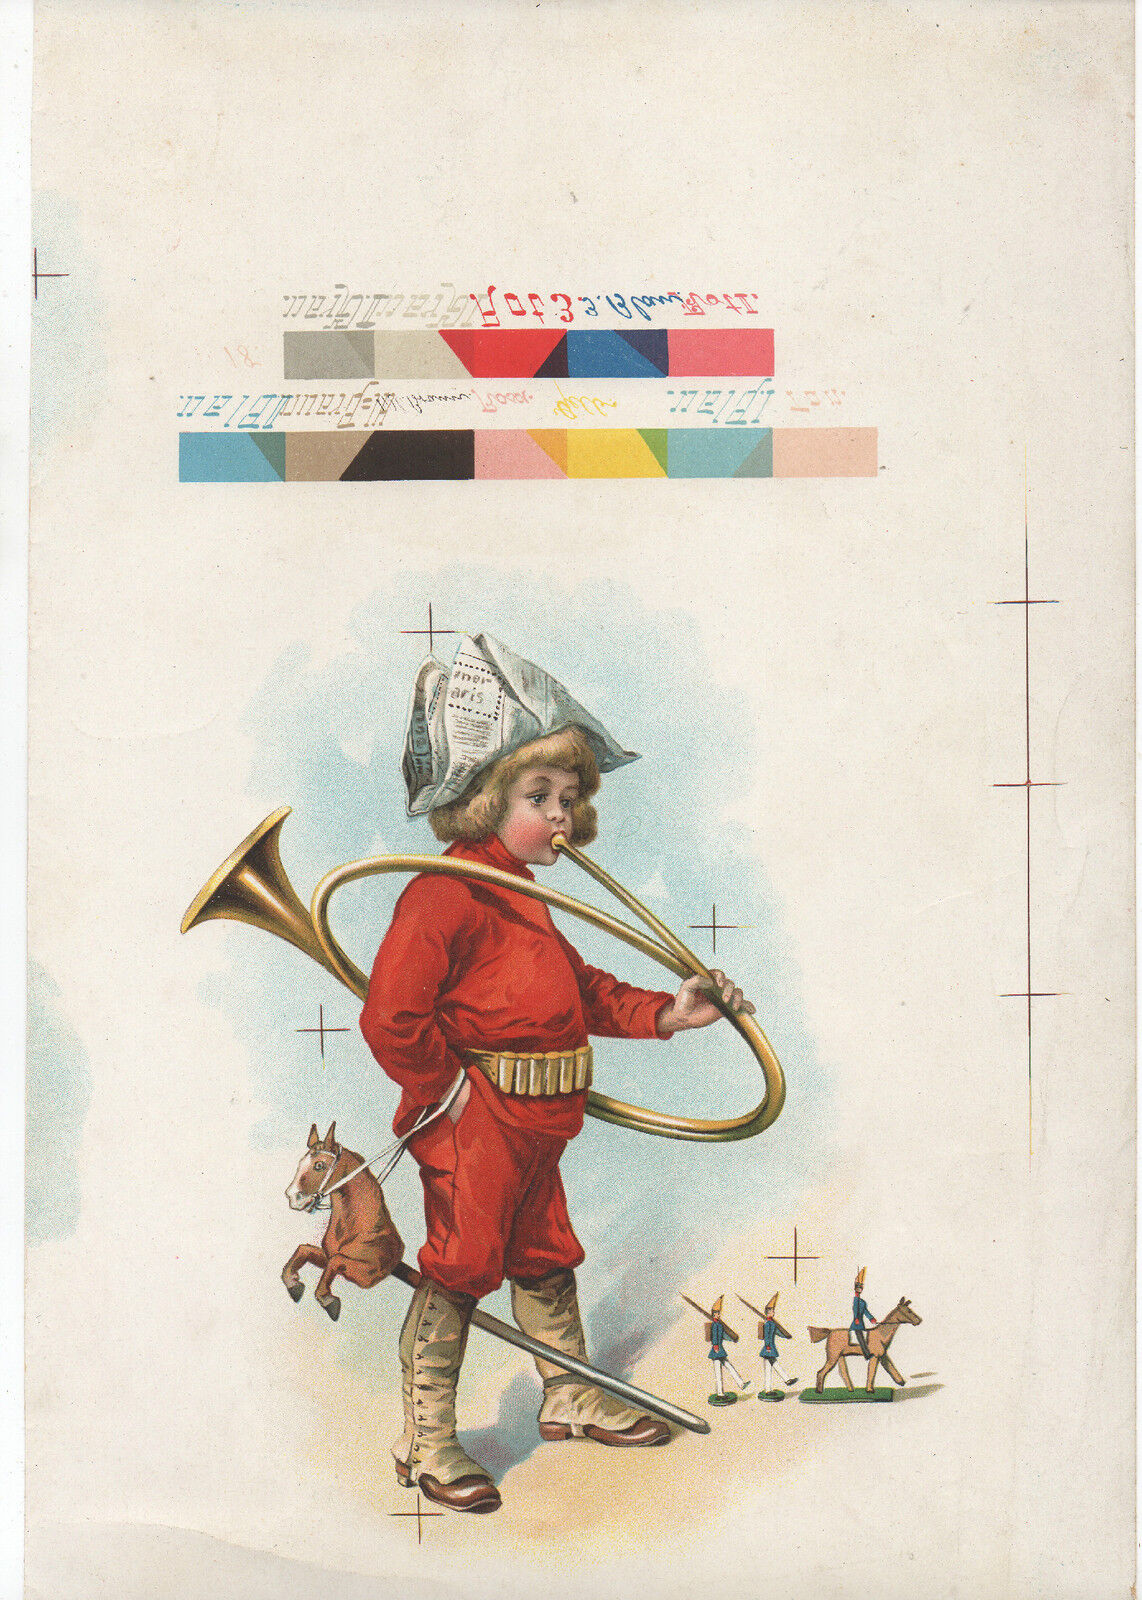 1900 Sample color Print of Boy playing a Horn holding a Horse Ride Toy